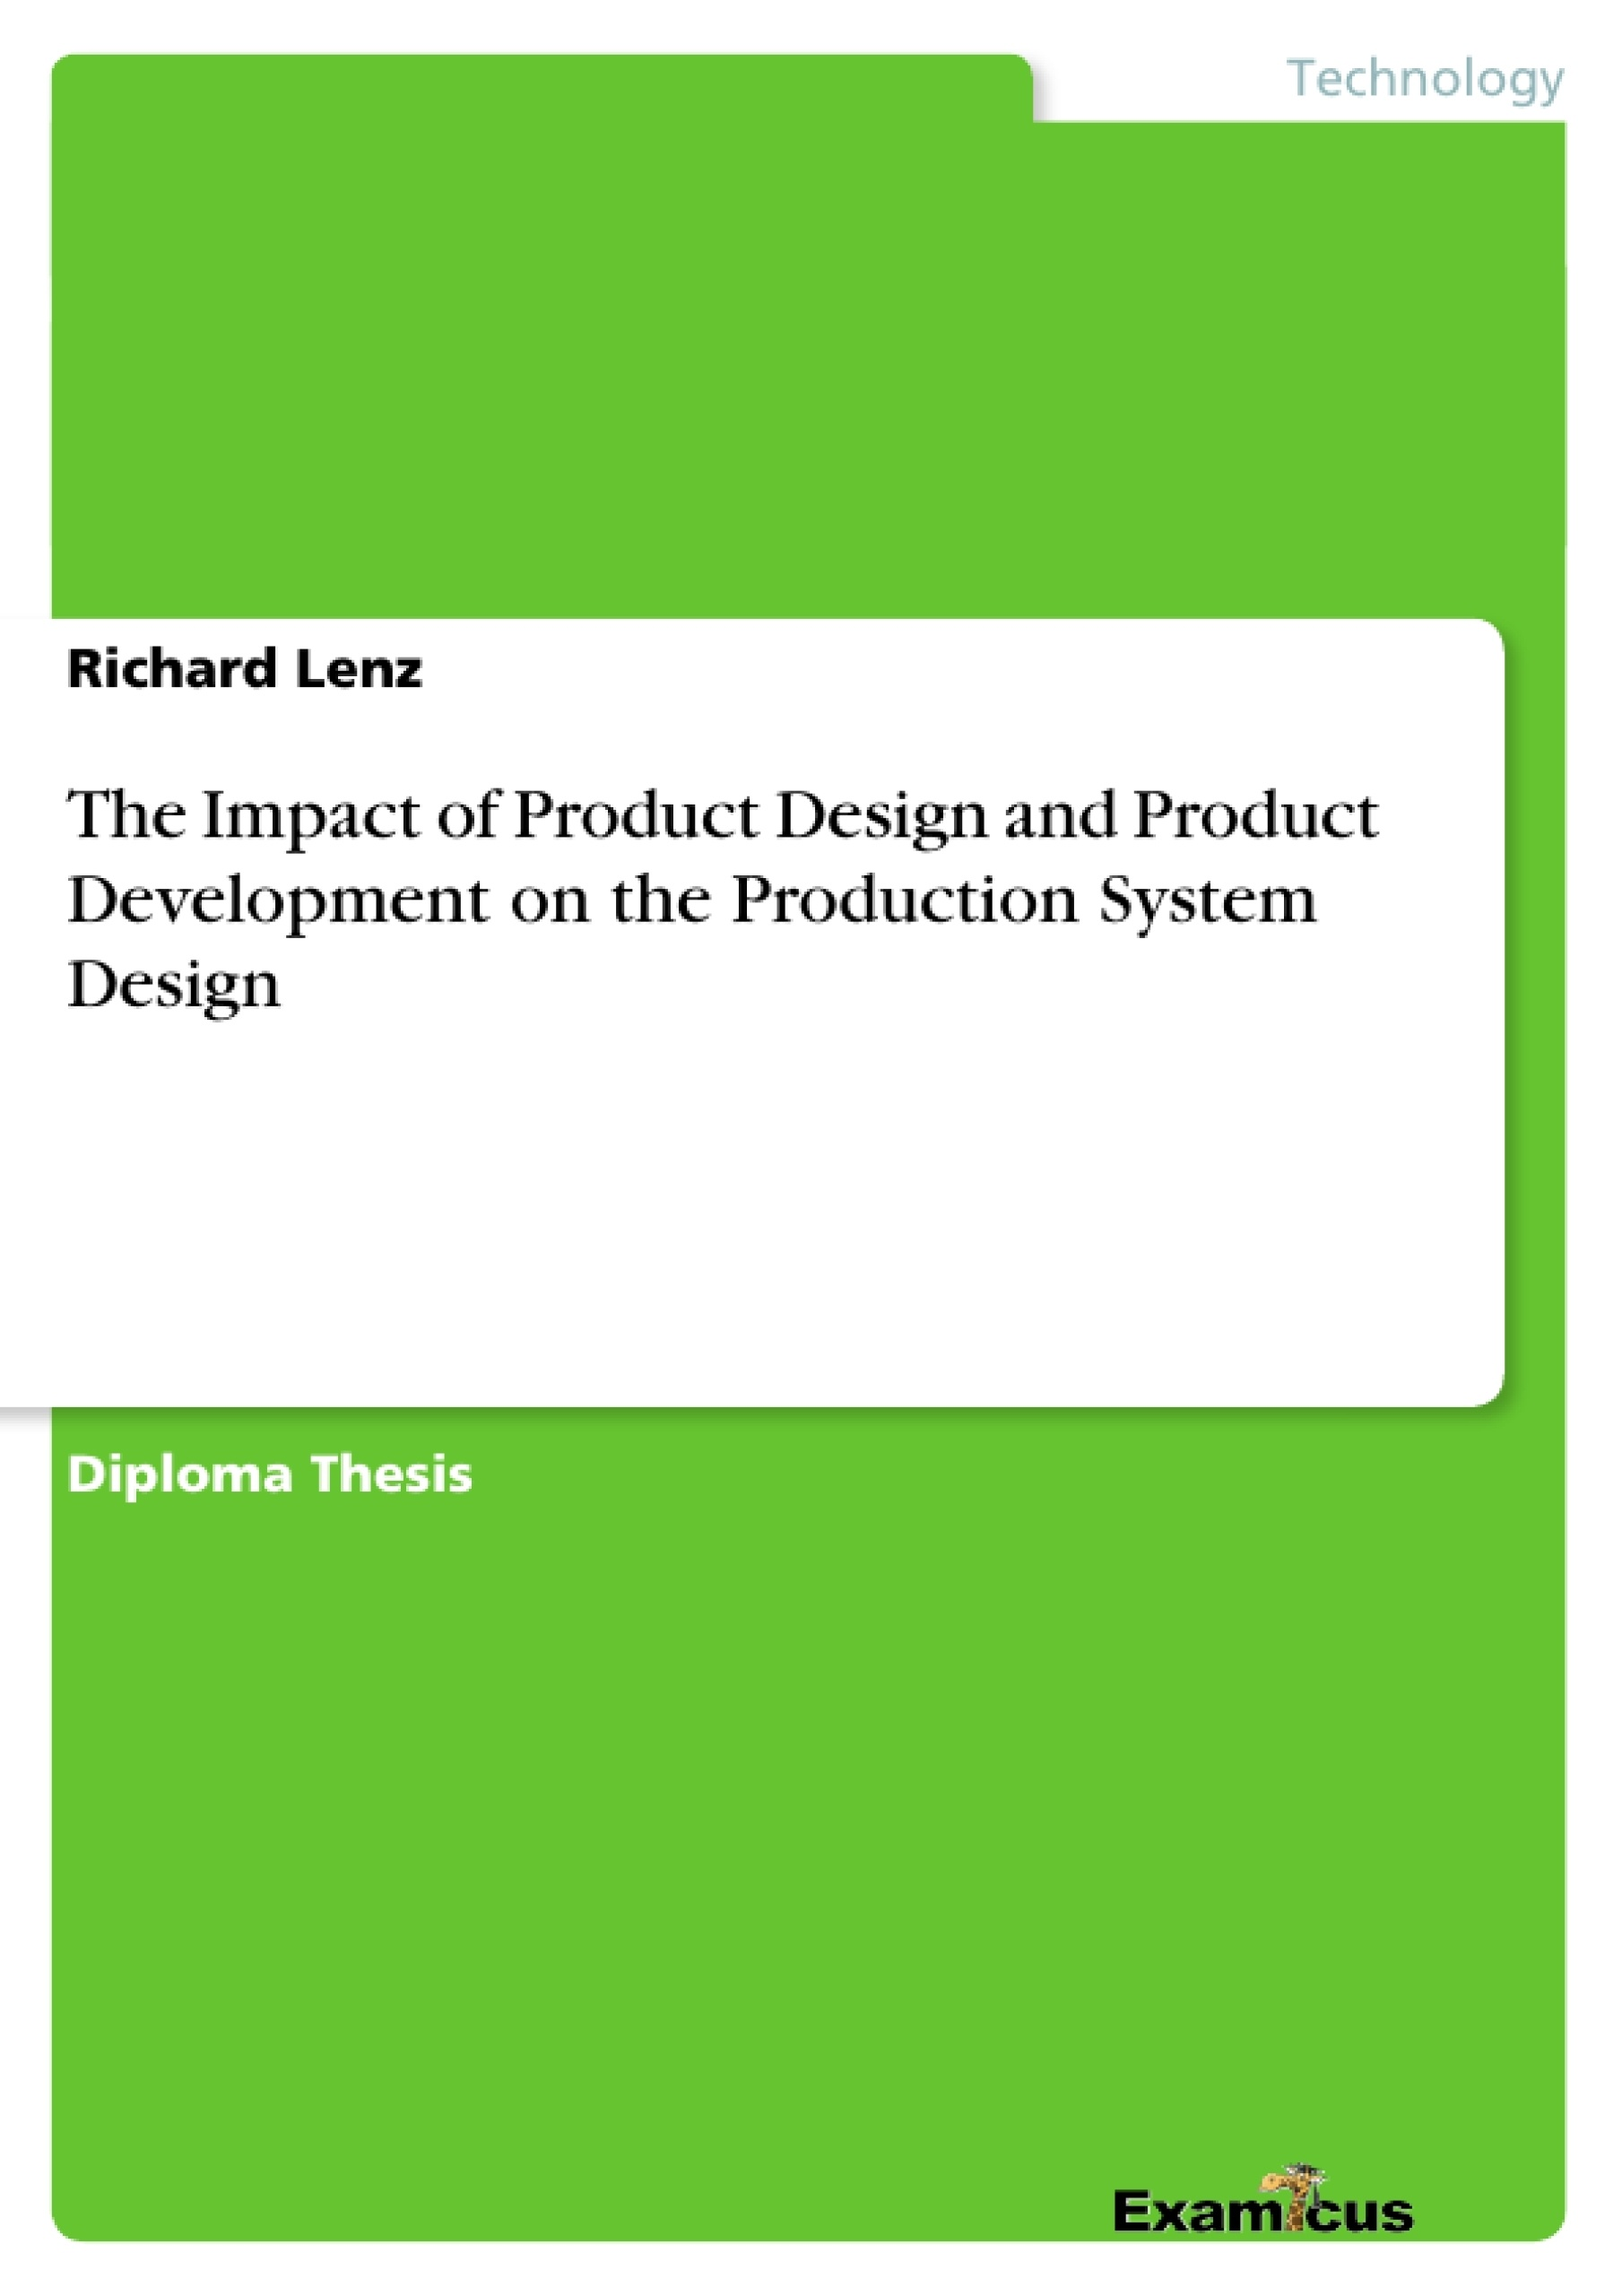 Title: The Impact of Product Design and Product Development on the Production System Design